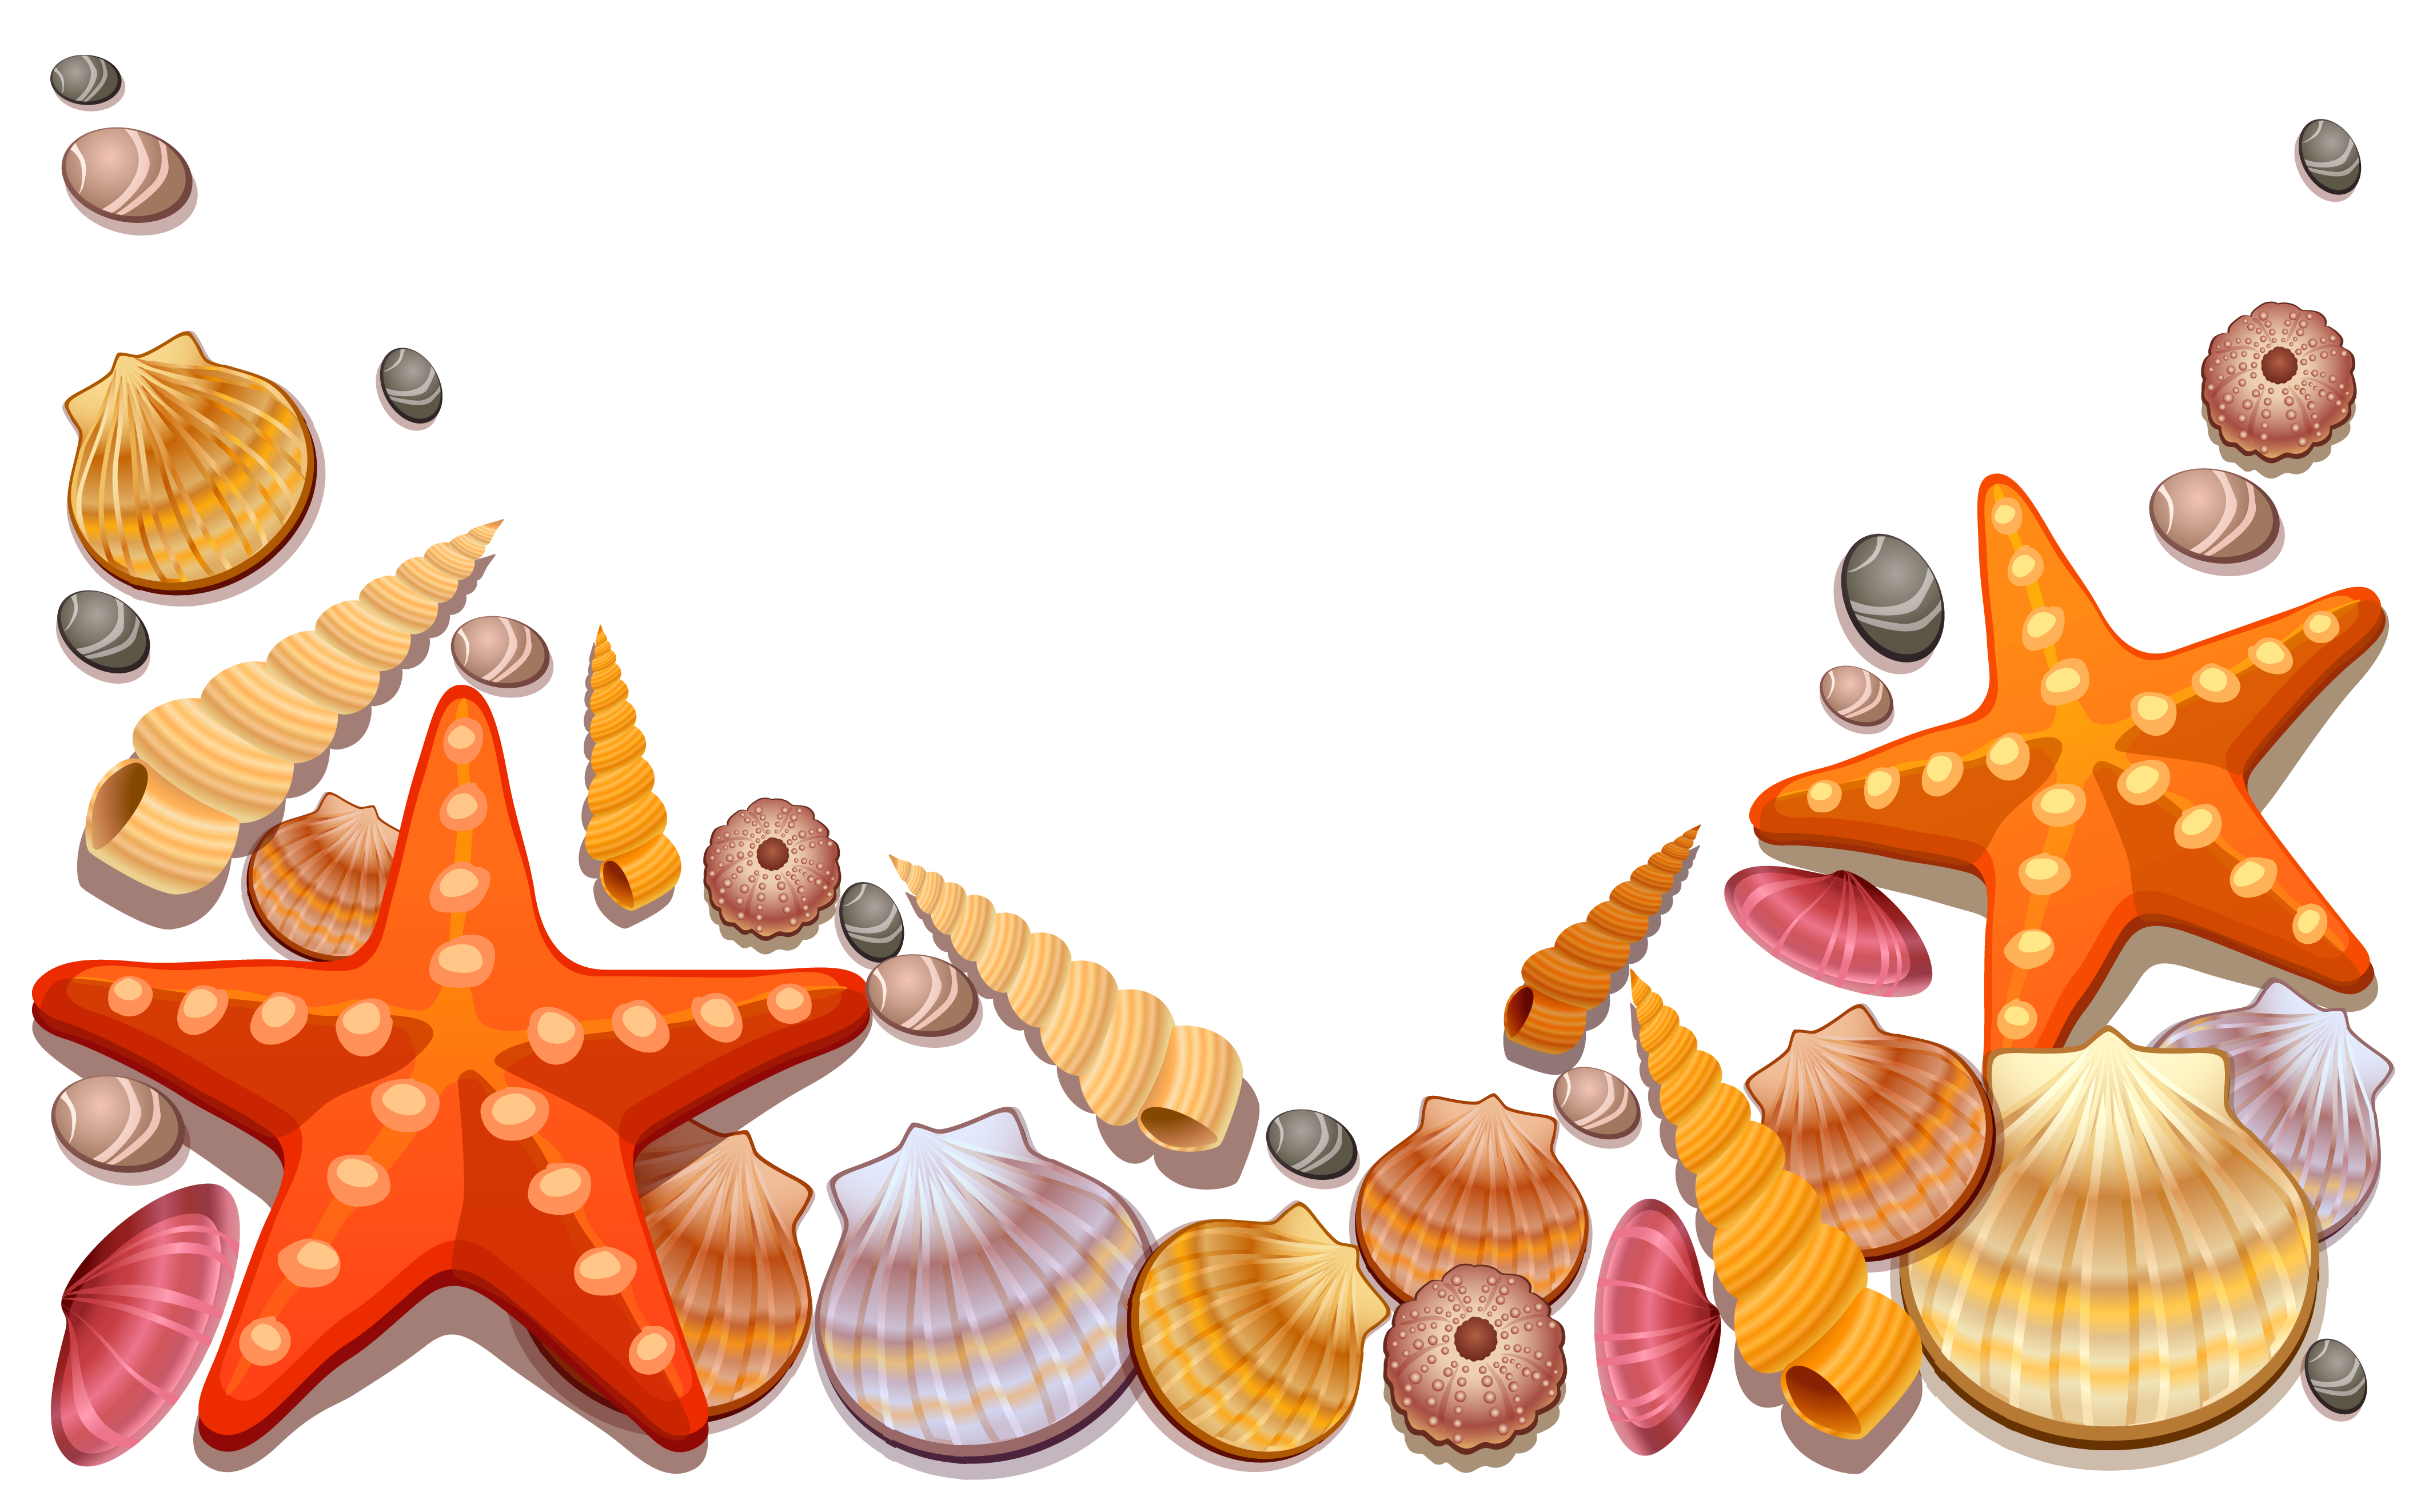 seashell clipart at getdrawings com free for personal use seashell rh getdrawings com seashells clipart png seashell clip art black and white